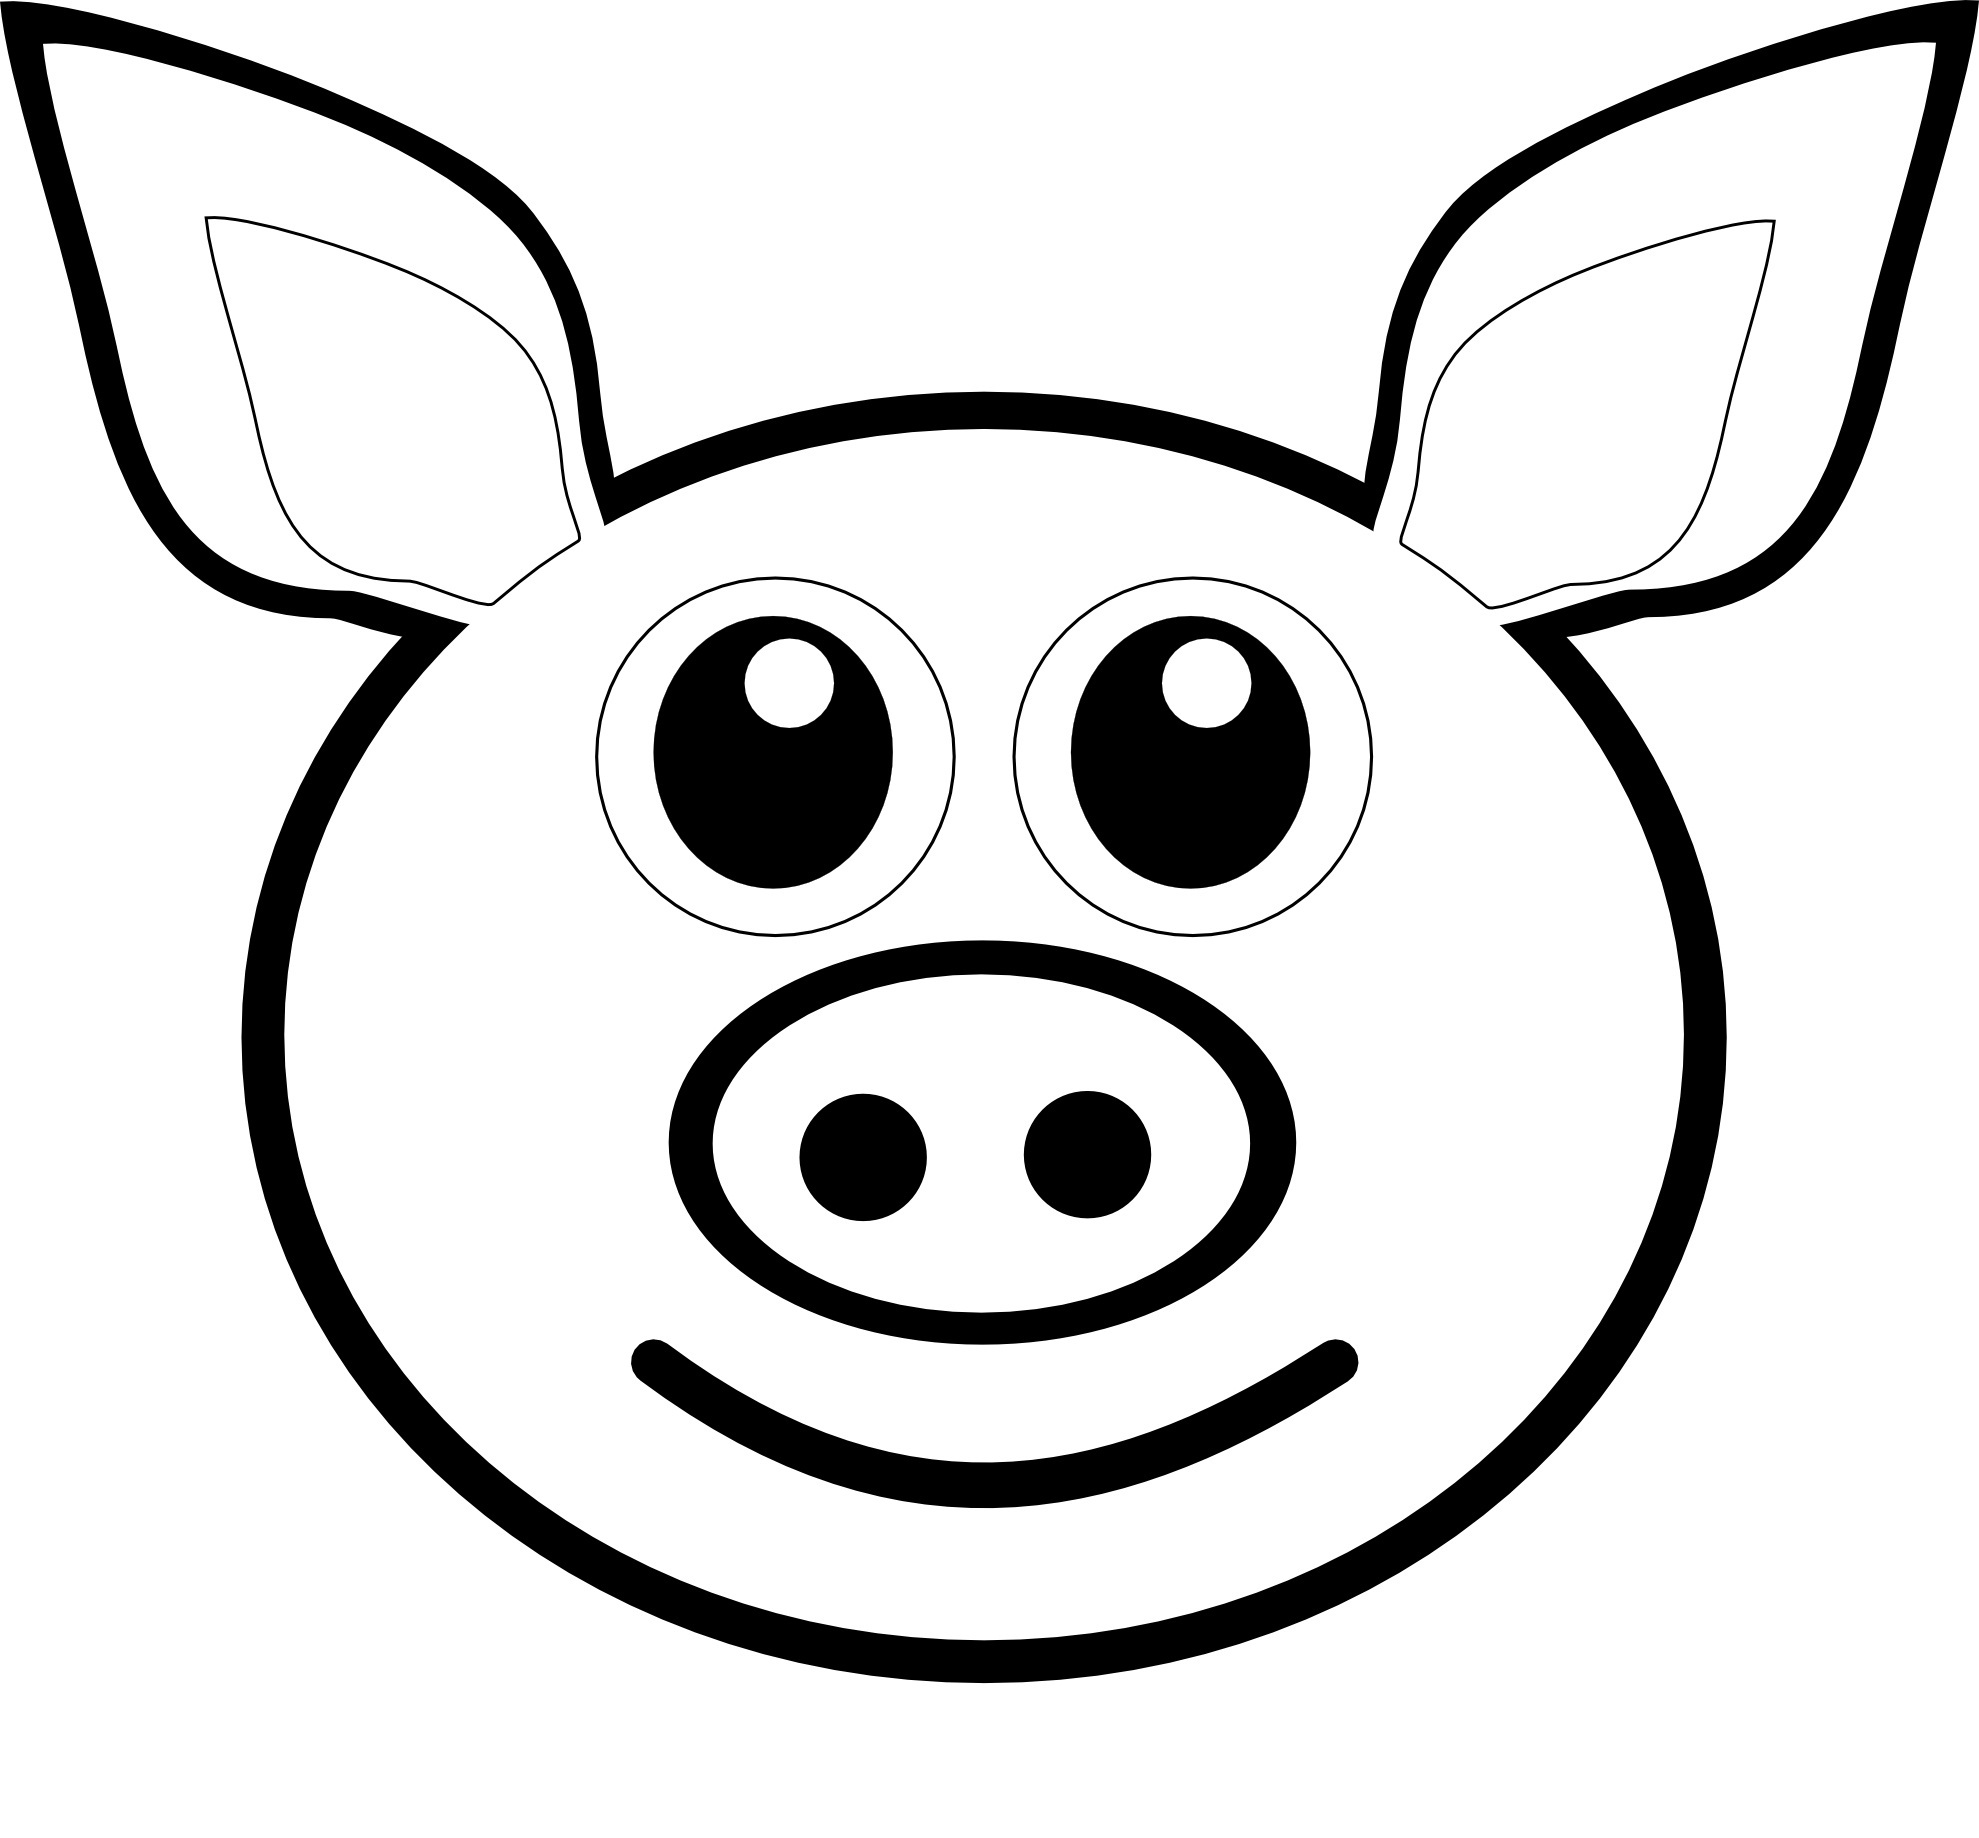 Adult Best Coloring Pages Pig Images best carrot coloring pages adults pig face page of gallery images